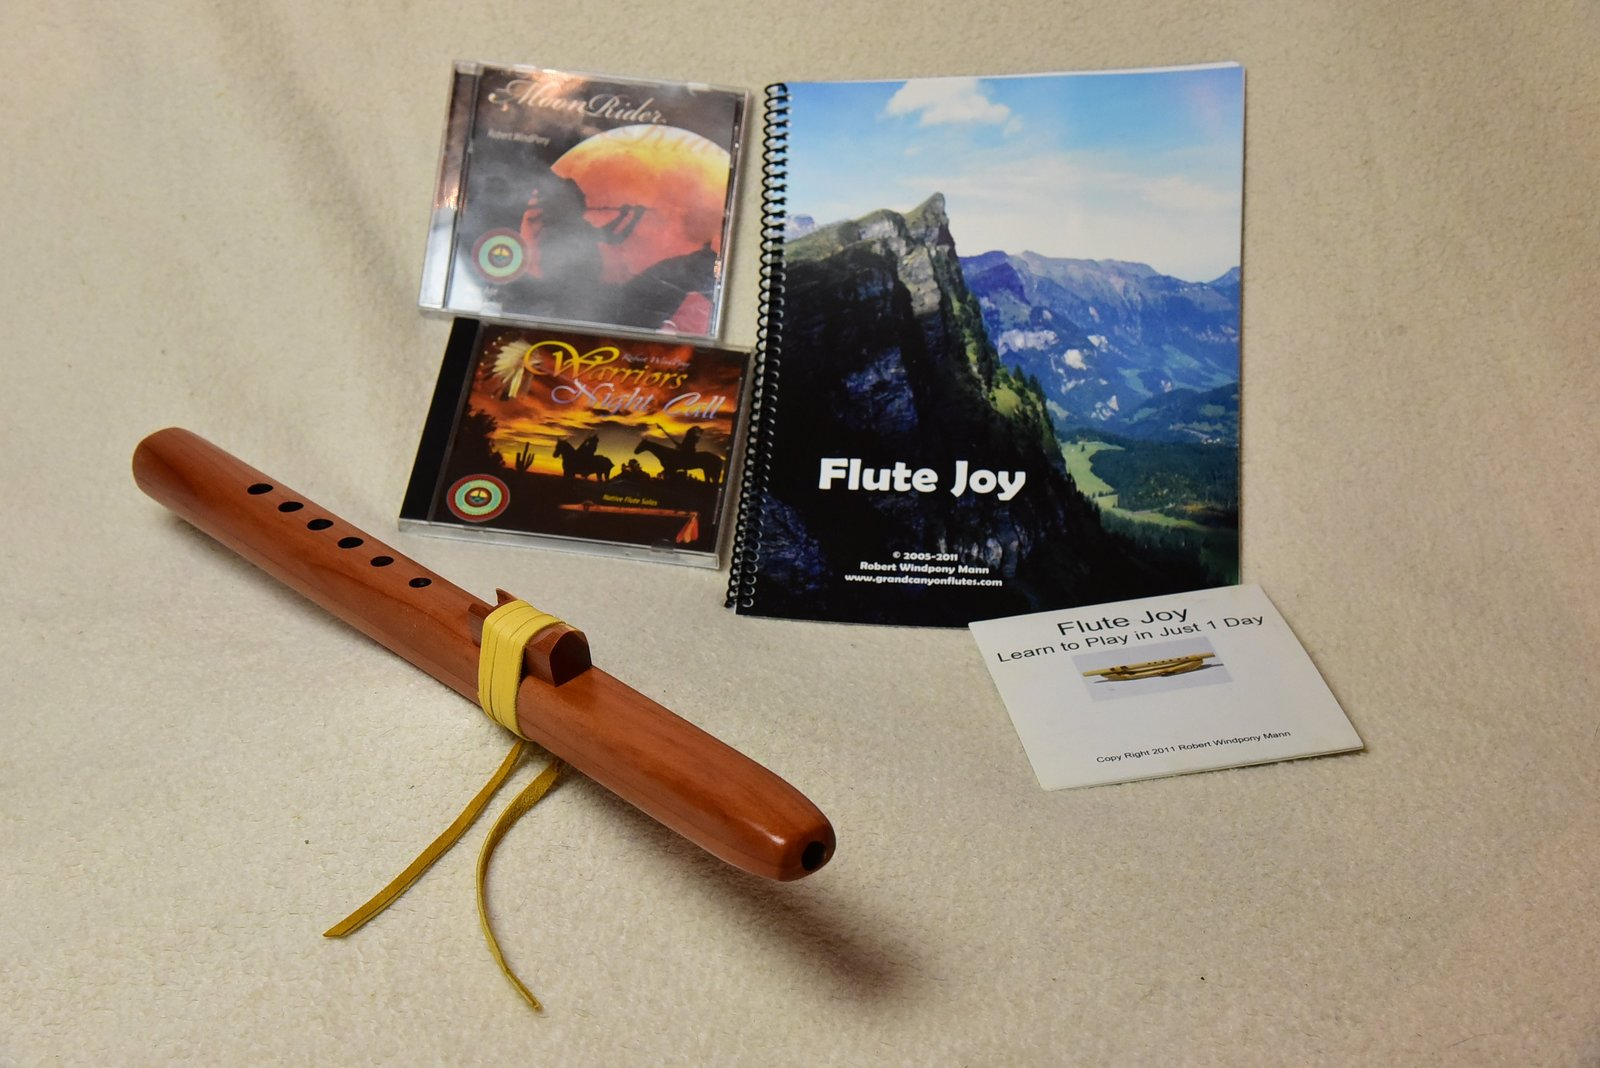 Hi C Windpony Cedar flute with Book, instructional CD, and 2 Windpony flute musi